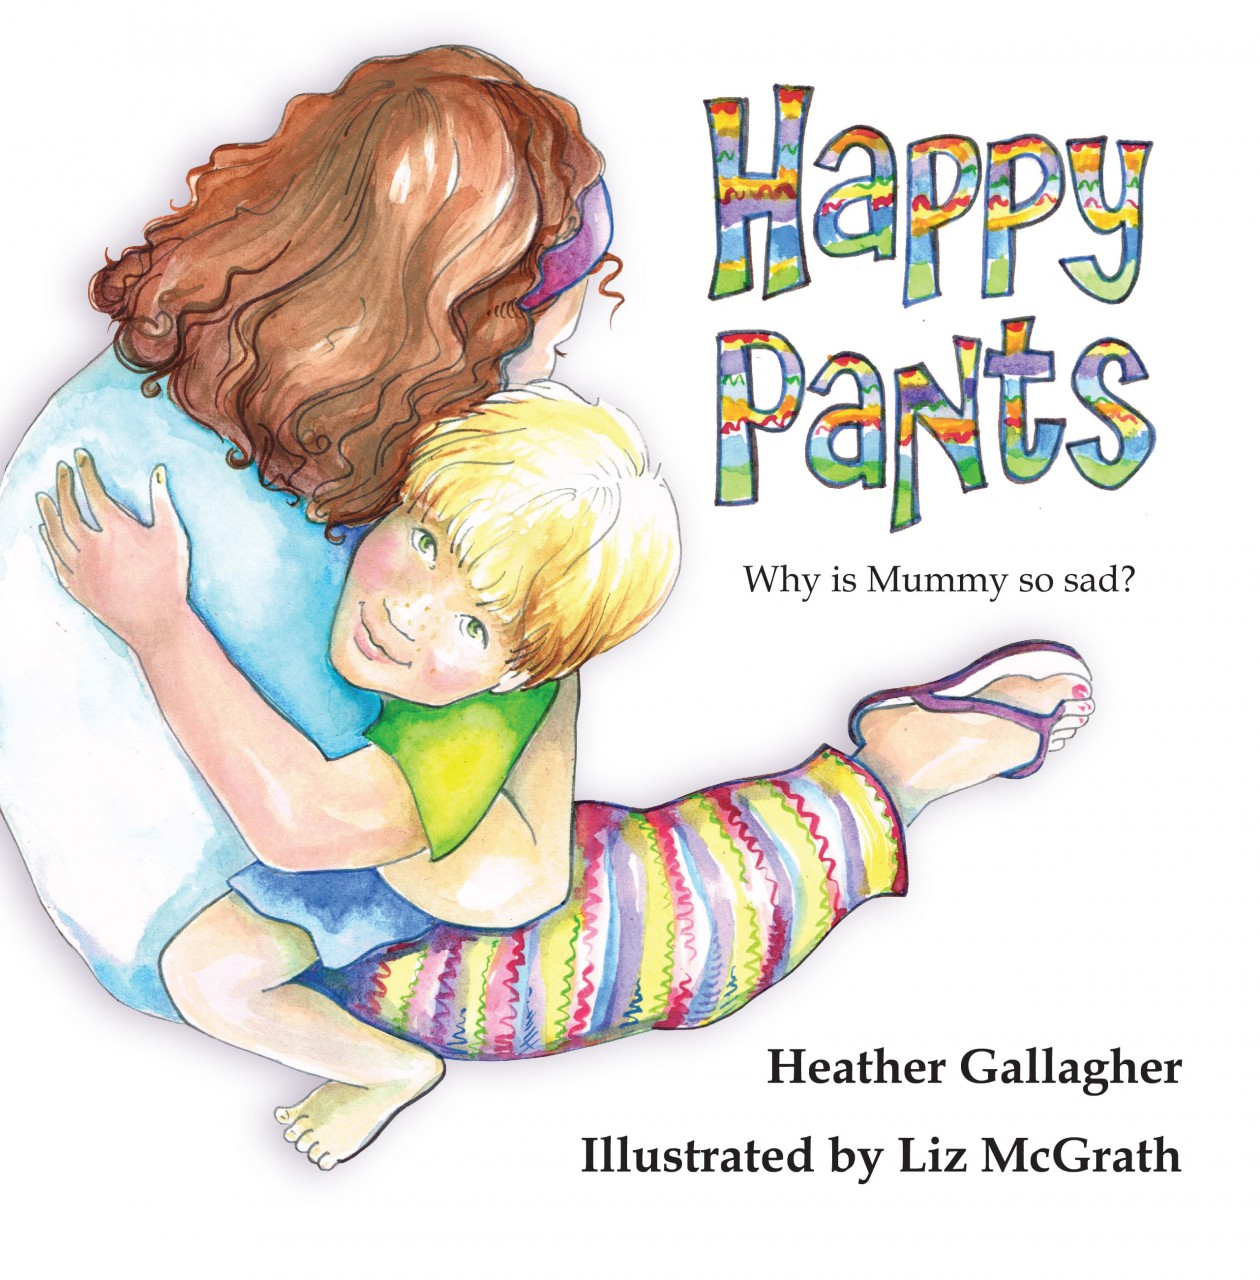 2015 Australian Family Therapists' Awards for Children's Literature